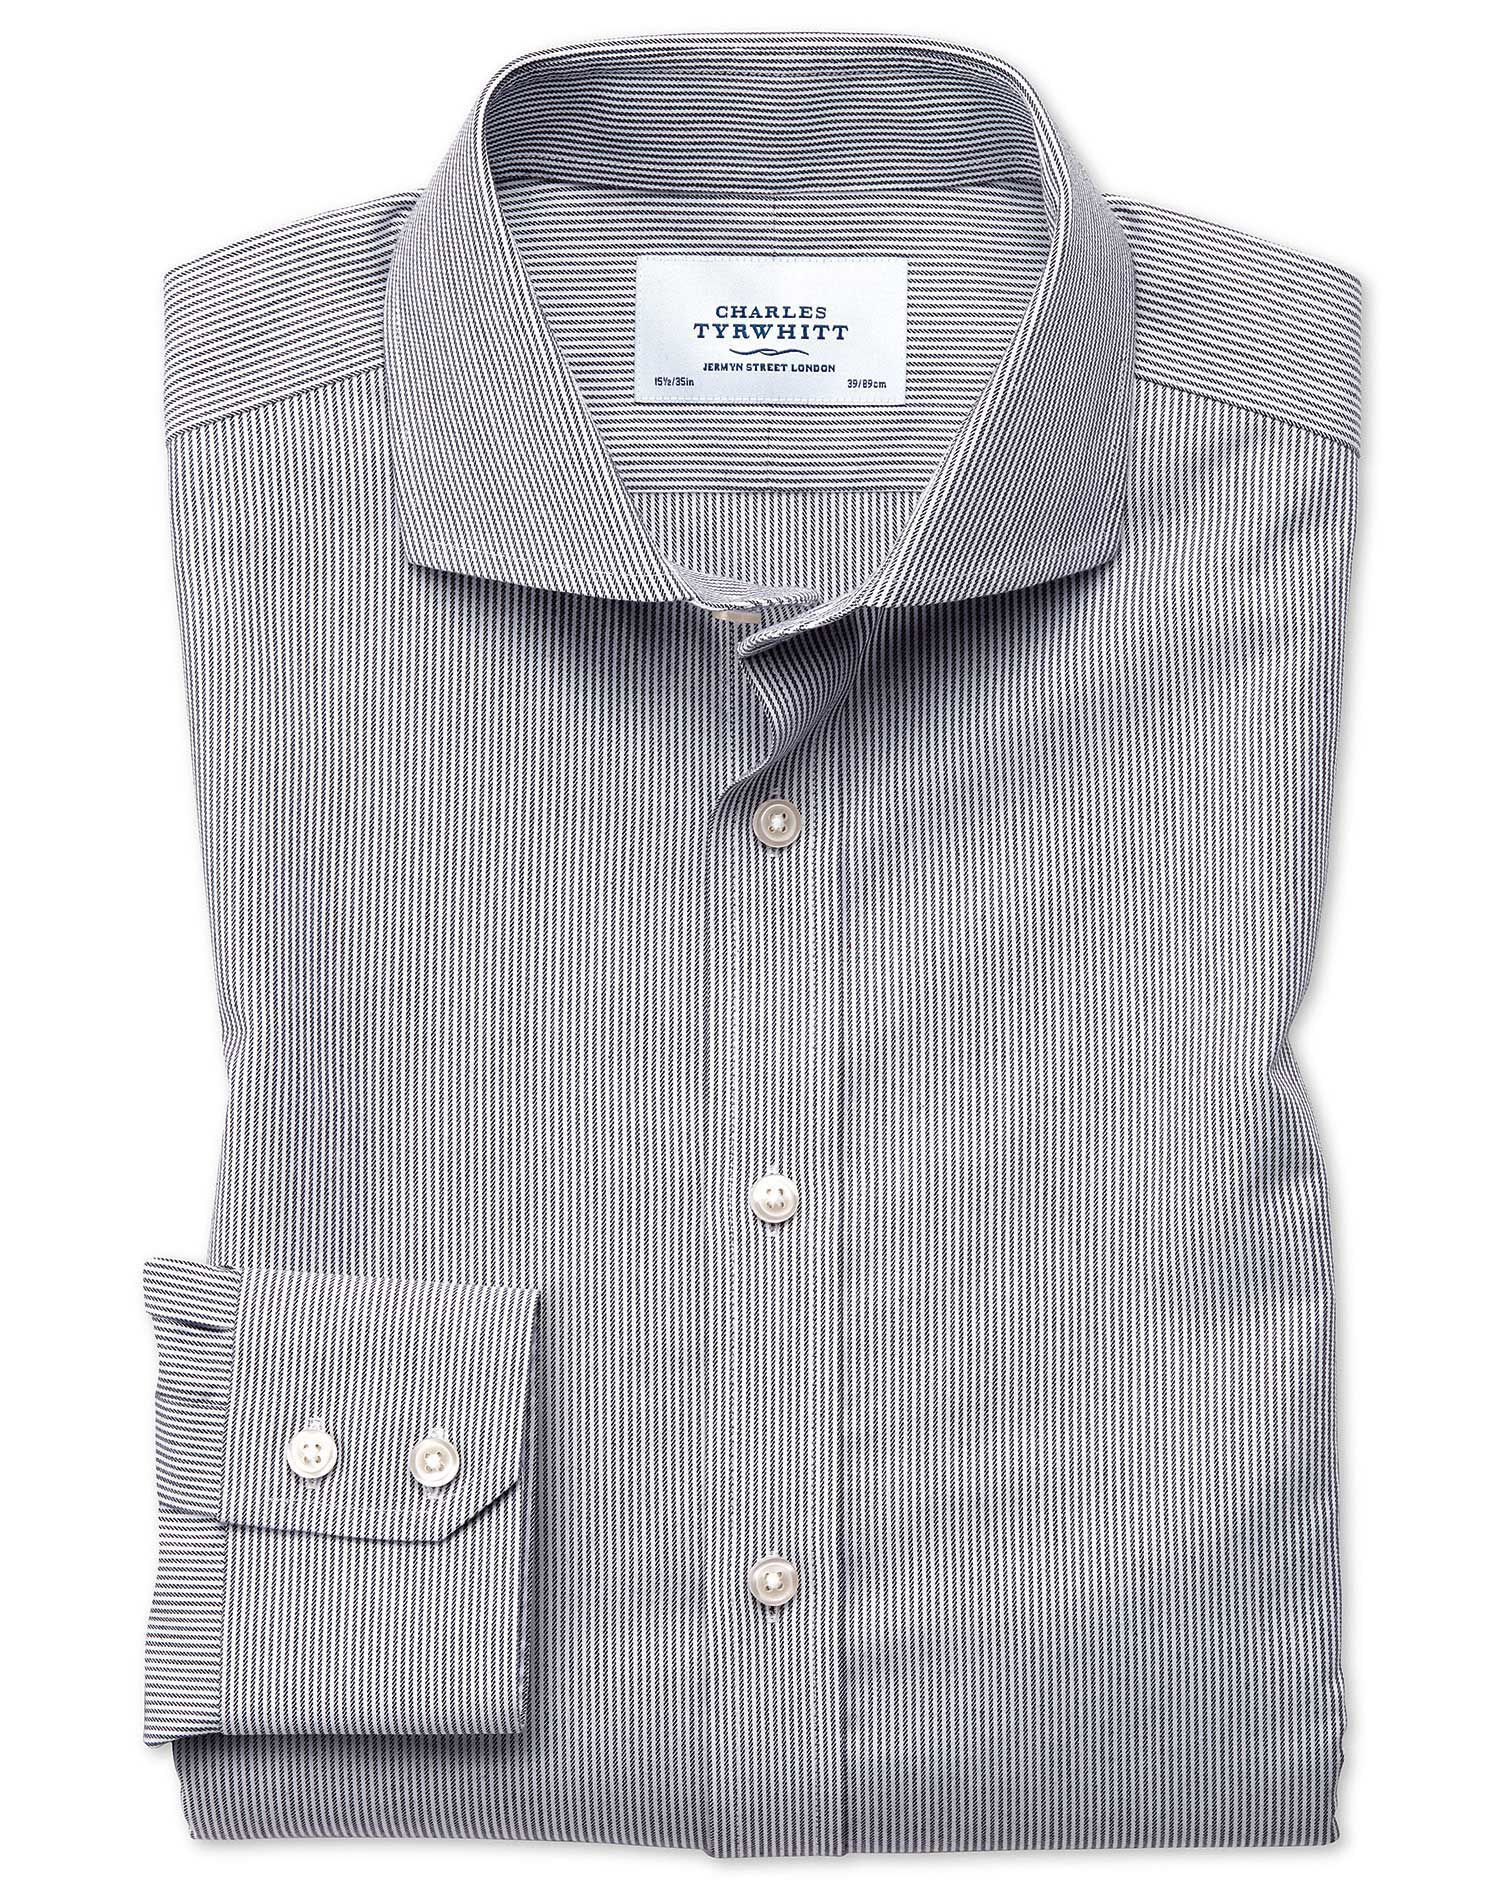 Slim Fit Cutaway Non-Iron Fine Stripe Charcoal Cotton Formal Shirt Single Cuff Size 17/34 by Charles